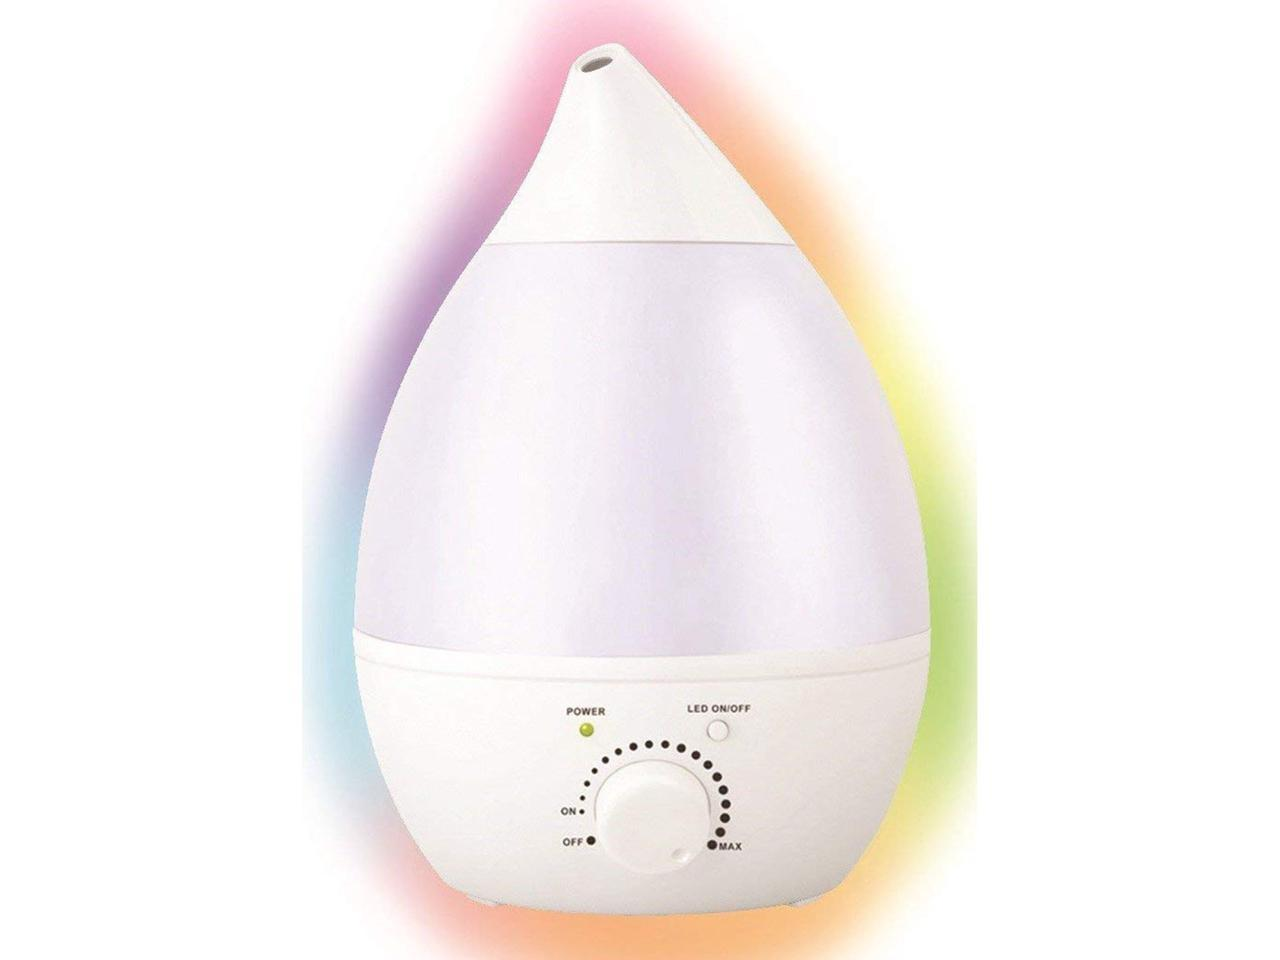 Remedies Cool Mist Aroma Oil Diffuser & Humidifier, LED Rainbow Color Changing